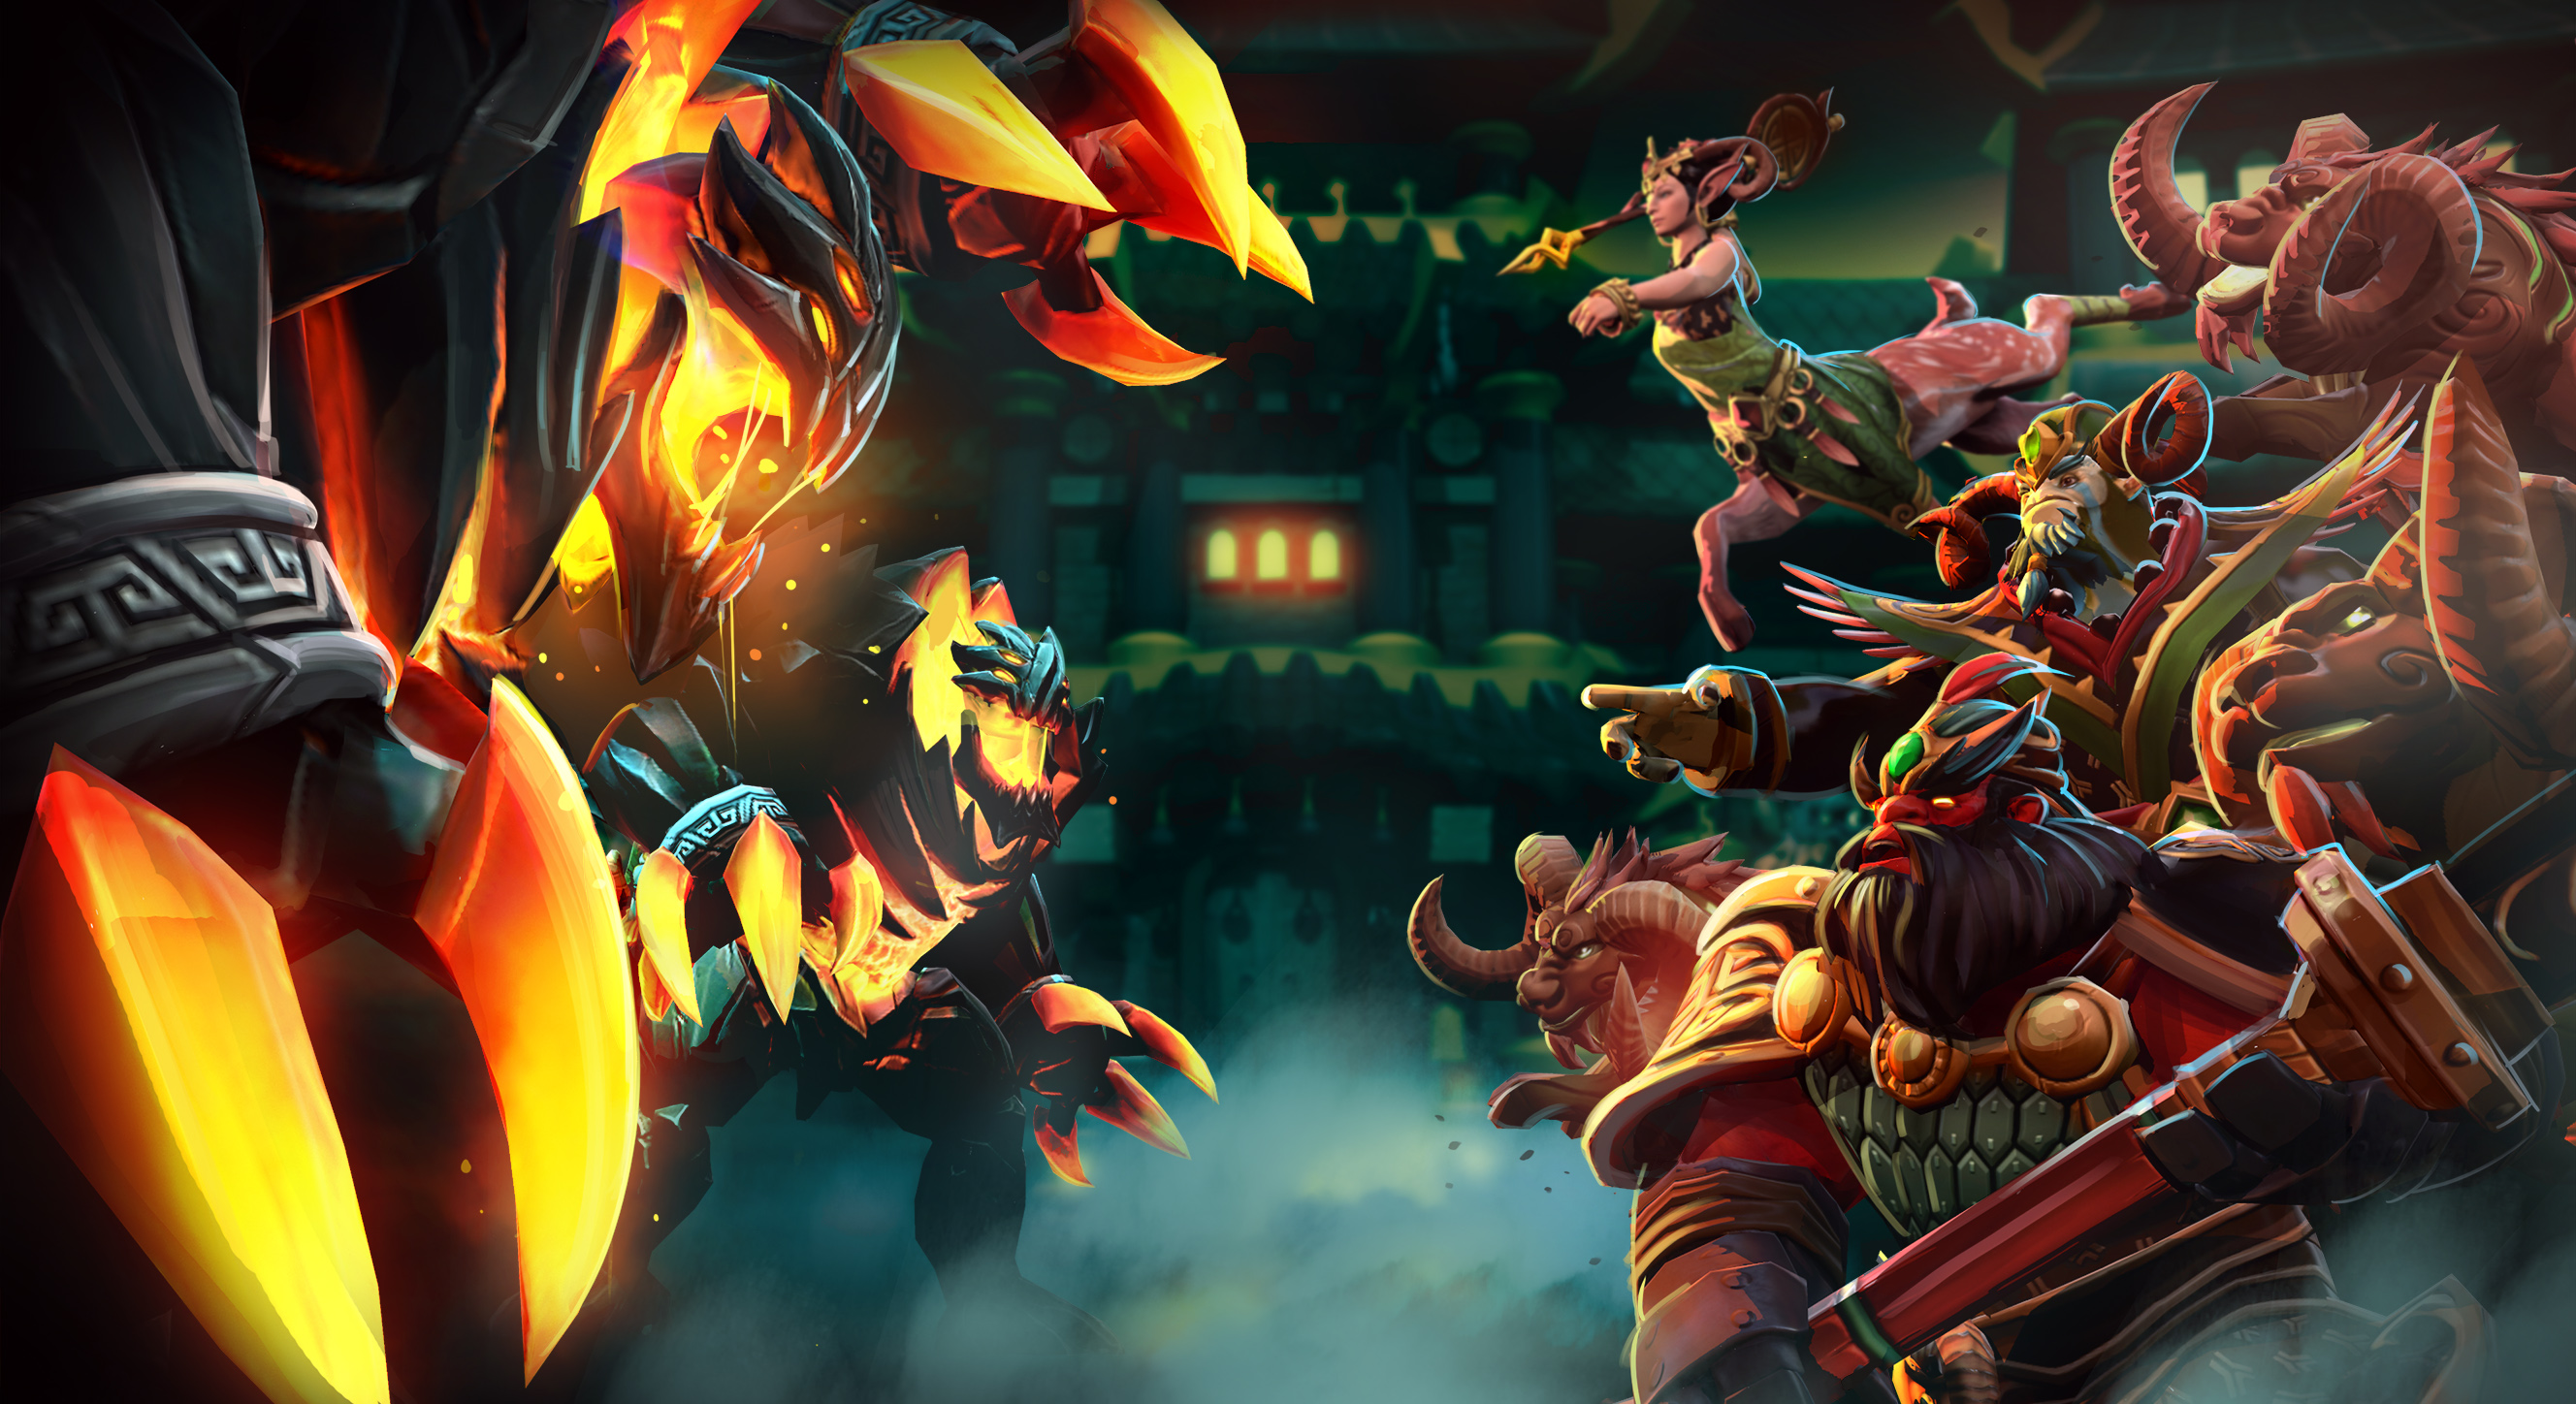 Dota 2 Hd Wallpaper For Laptop 32